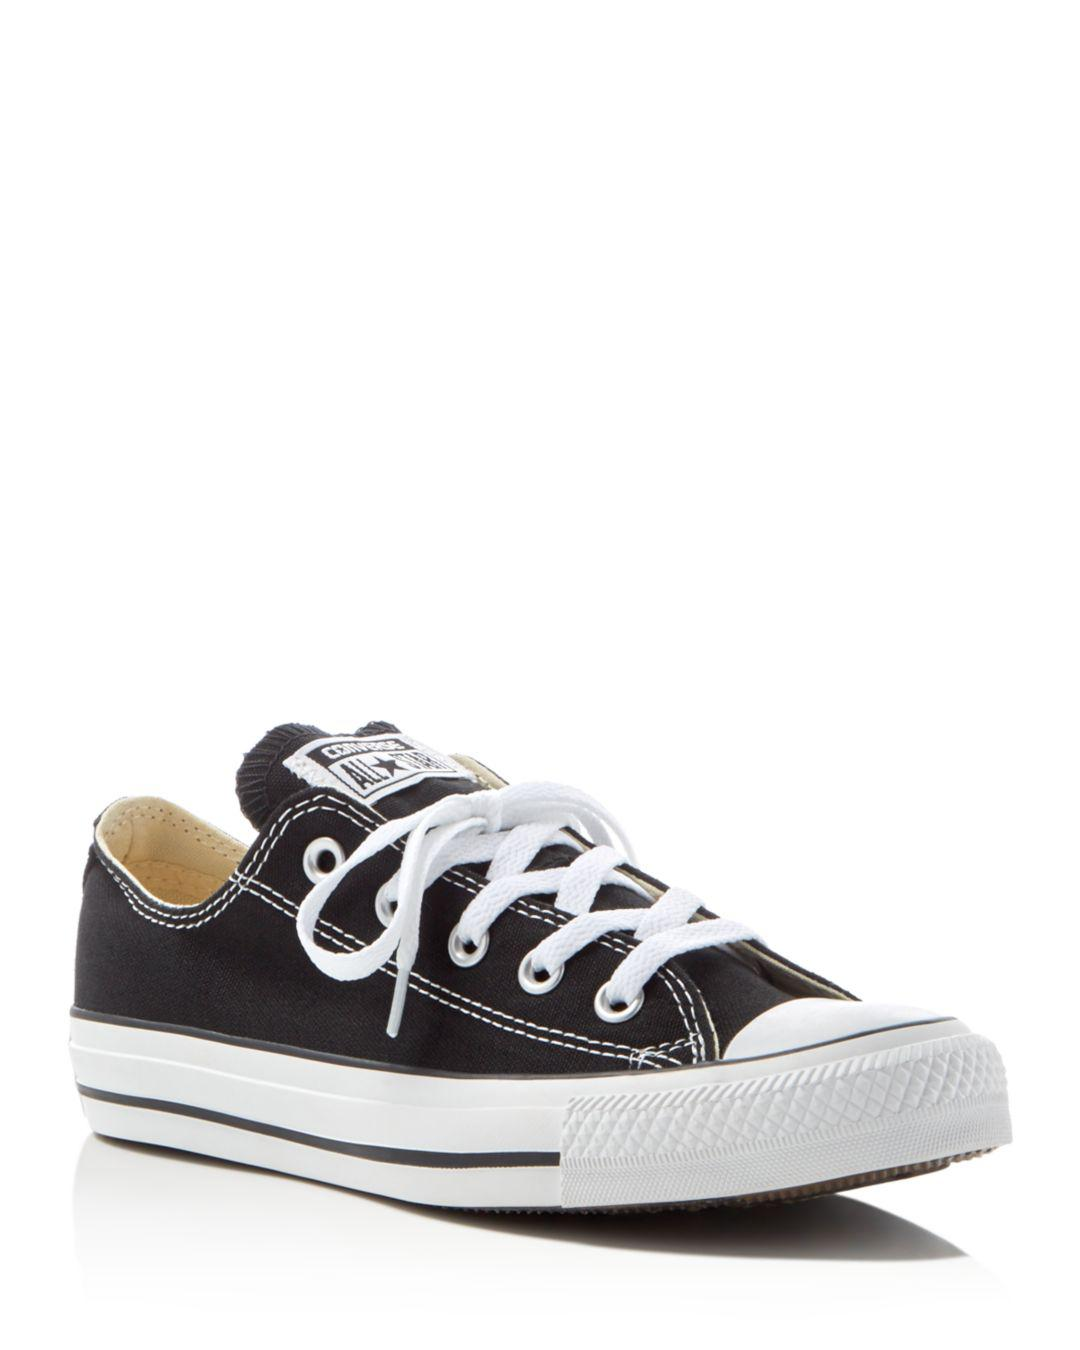 303cc2d7148 Lyst - Converse Women s Chuck Taylor All Star Lace Up Sneakers in Black